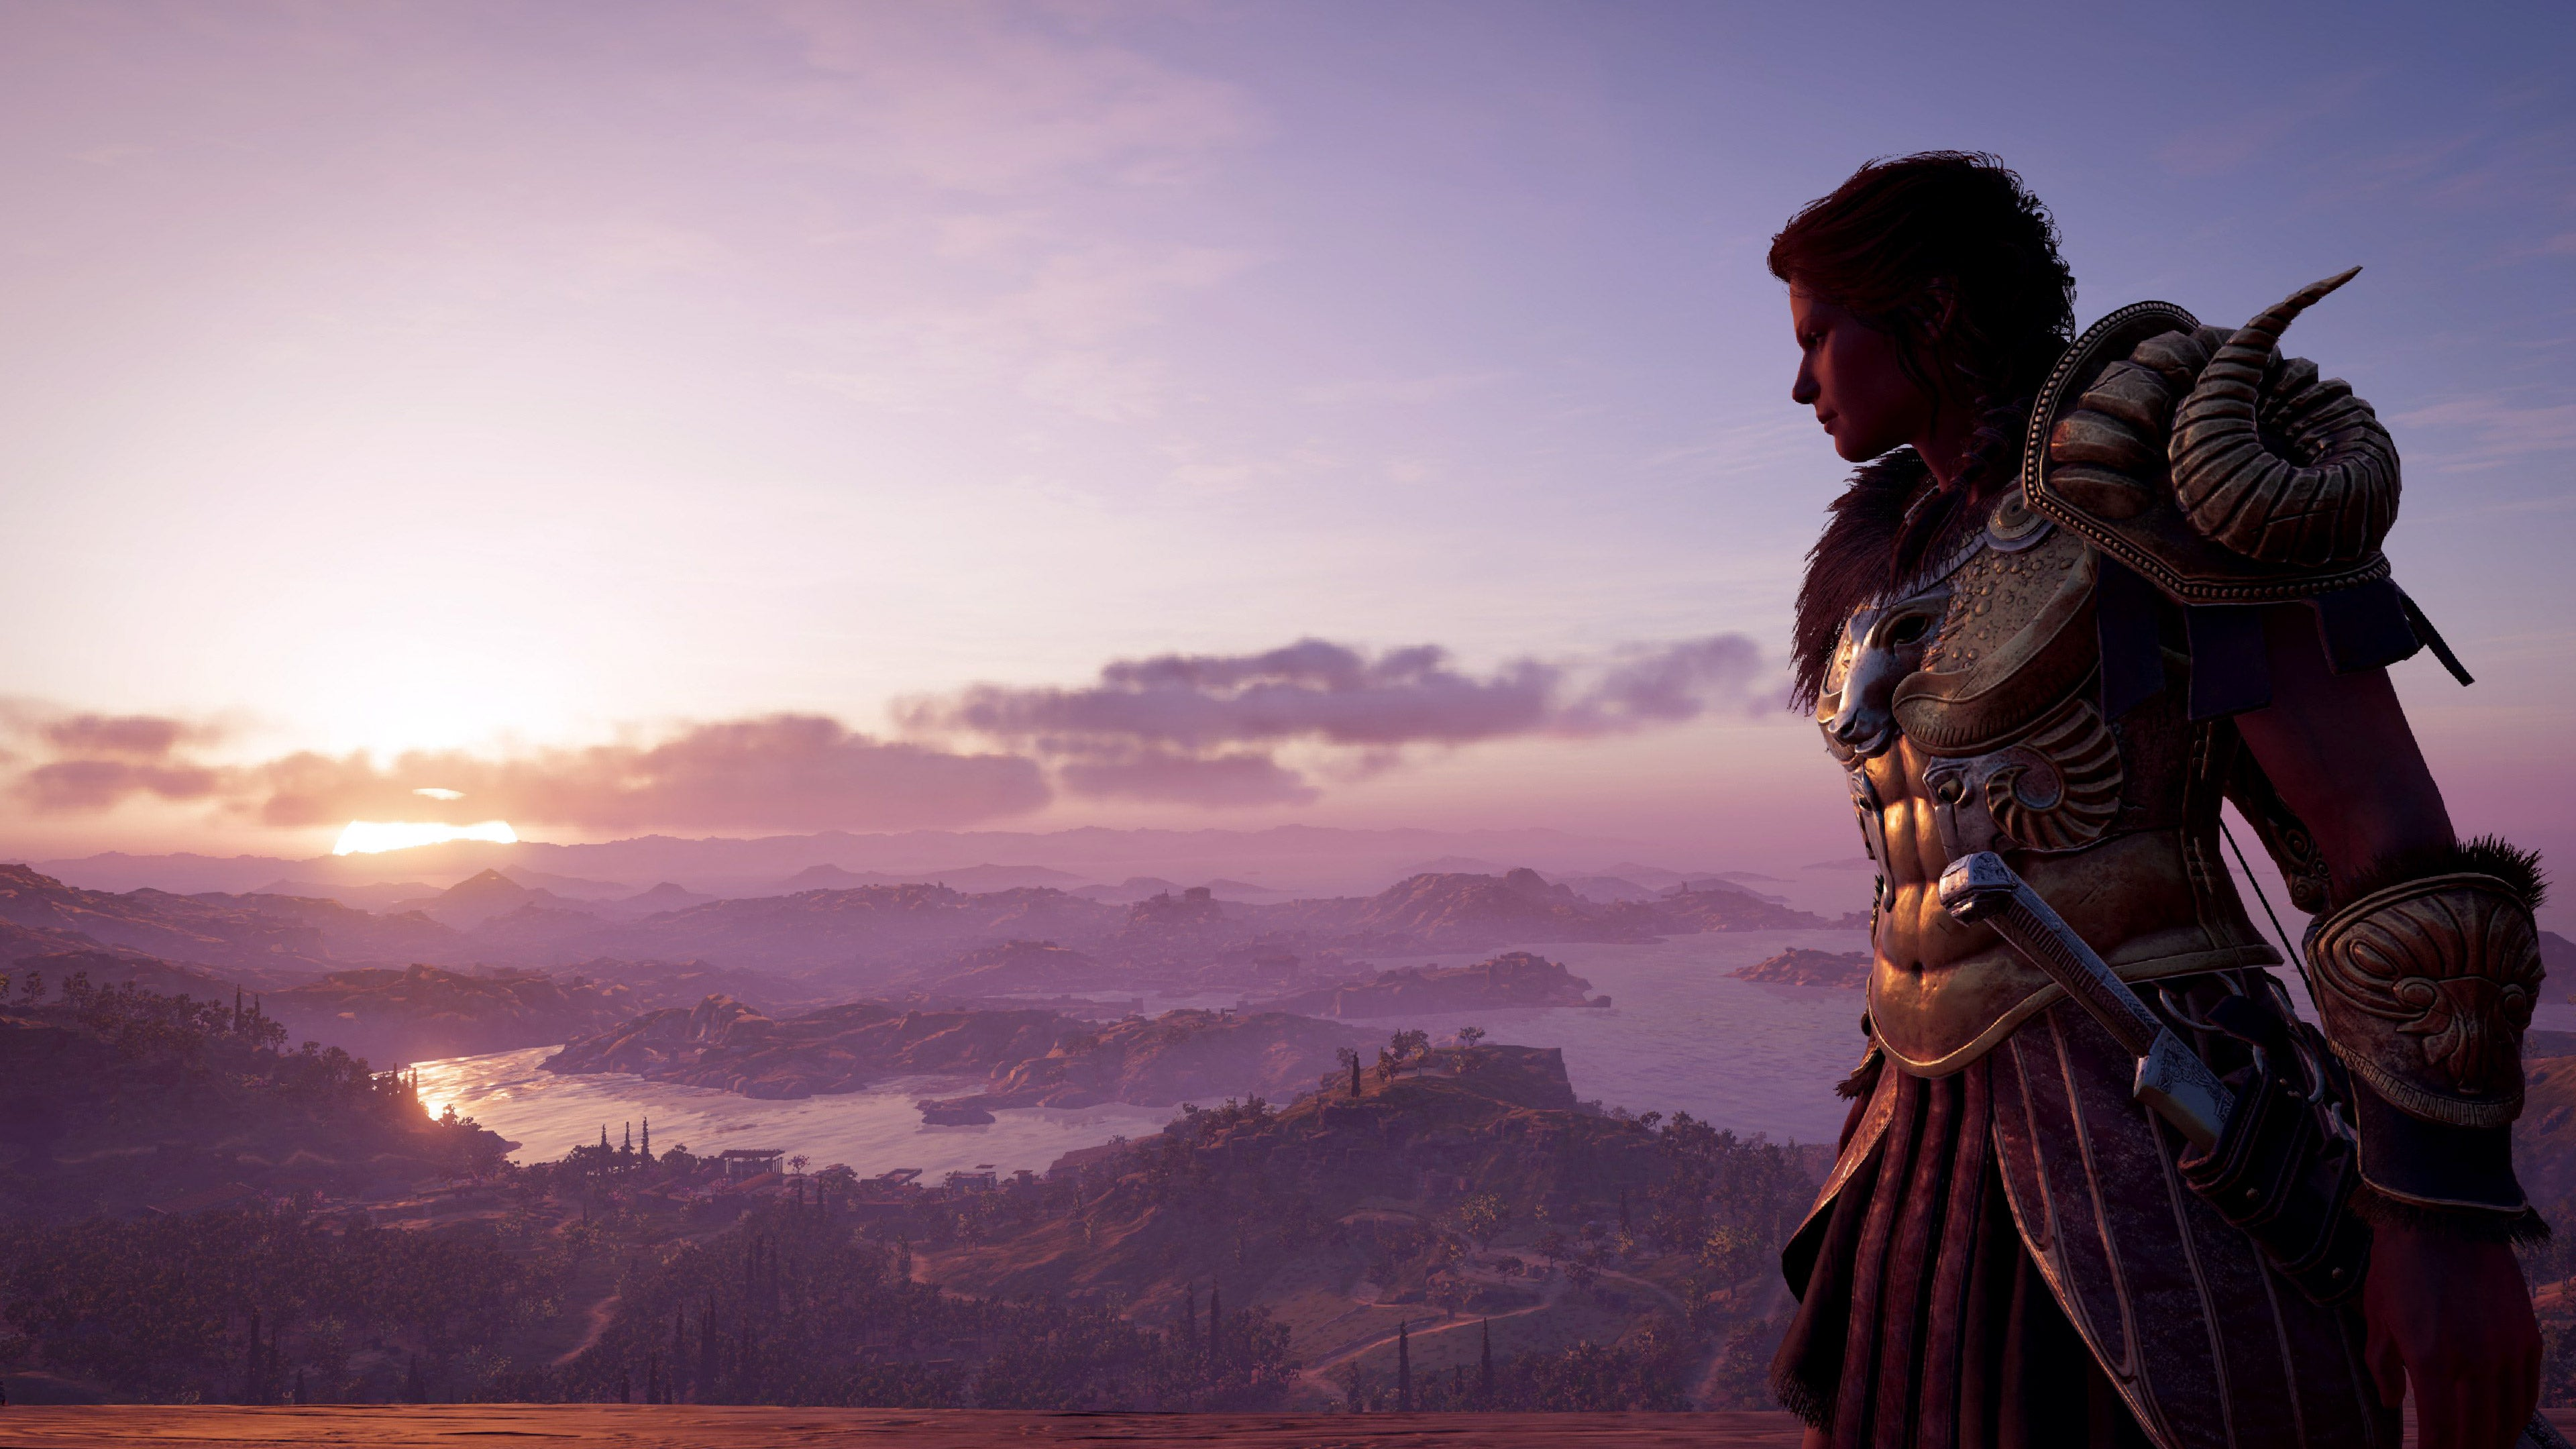 """""""Pining for more swords"""" – Assassin's Creed: Odyssey shot by Thomas Quillfeldt"""